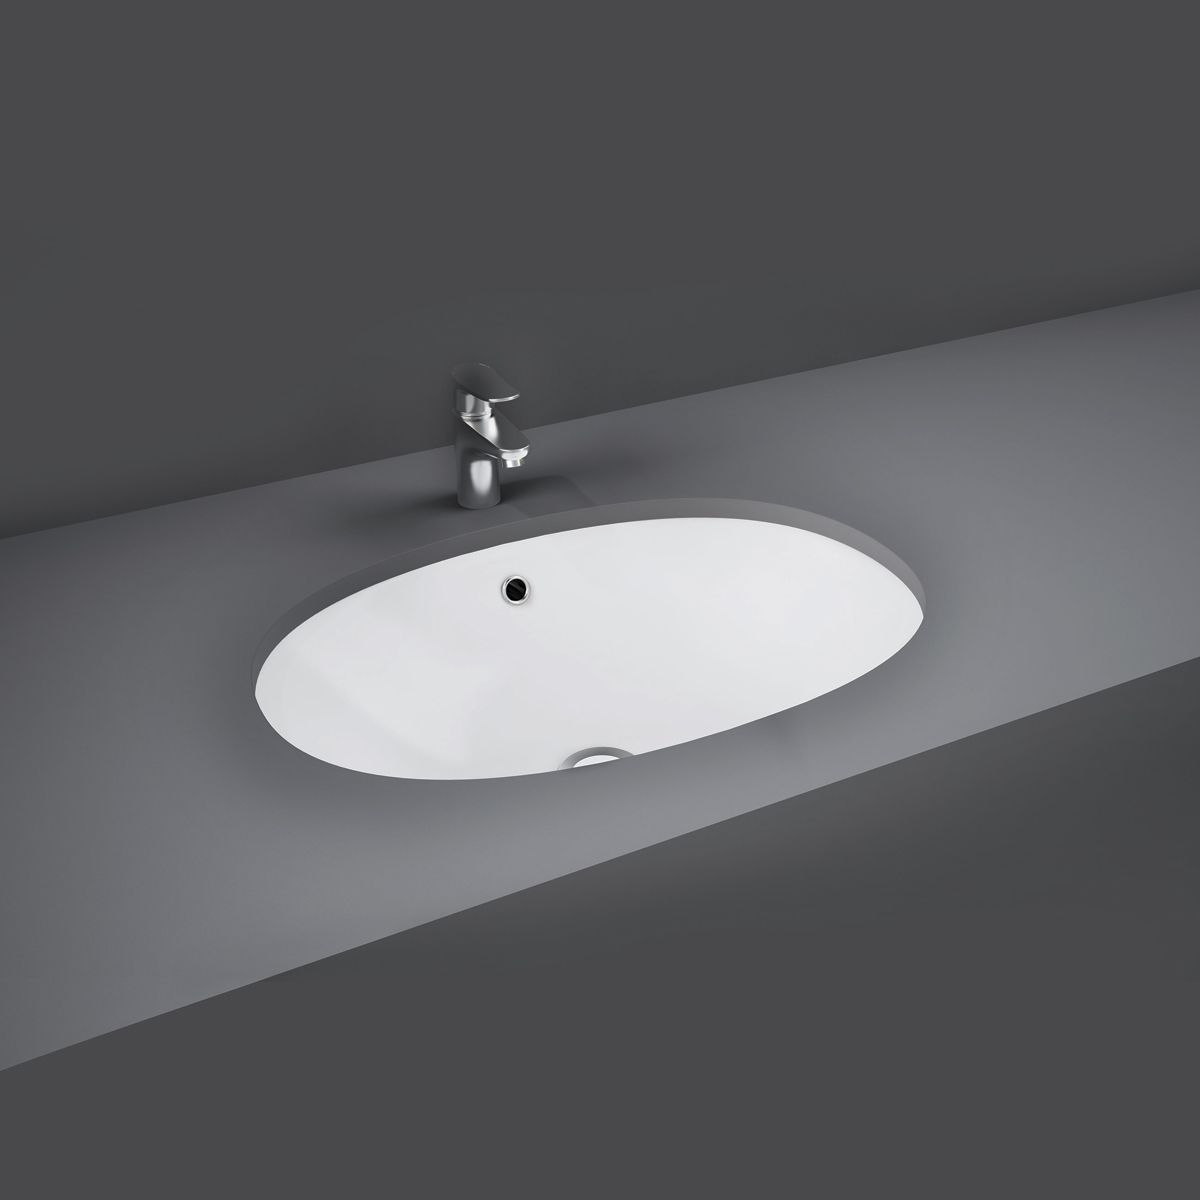 RAK Lily Under-Counter Vanity Bowl 460mm